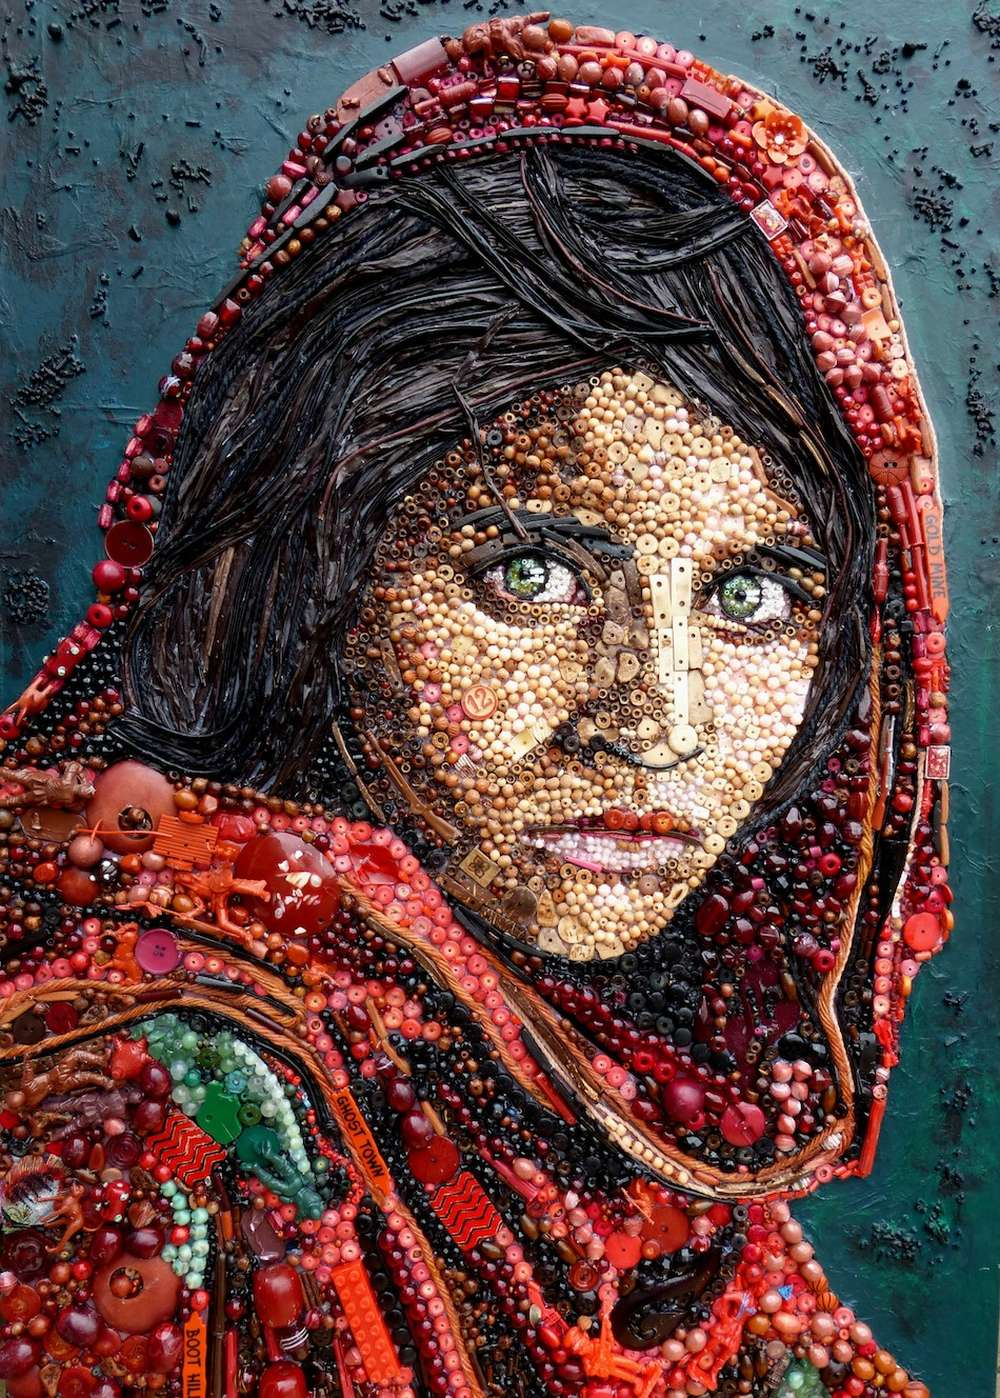 Incredible Portraits Made Of Found Materials By Jane Perkins — Creatively Crafted To Beauty And Perfection